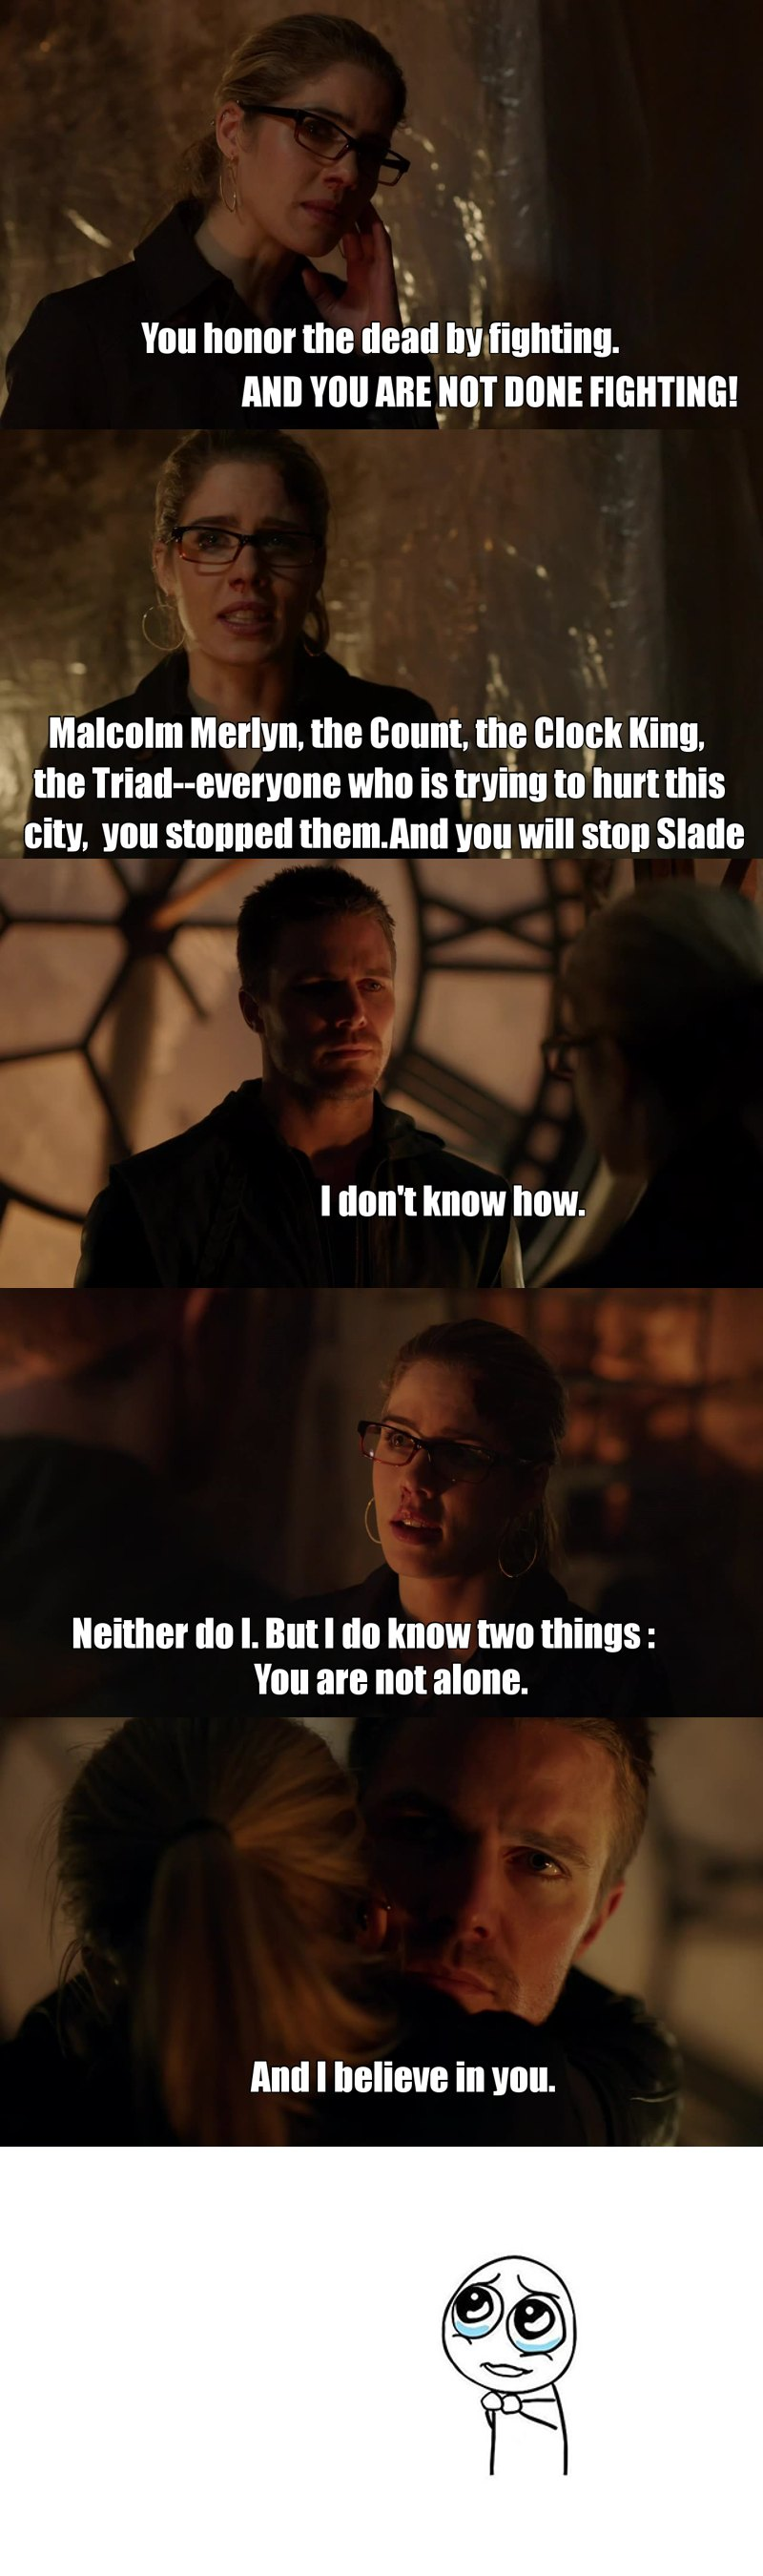 This scene made me cry, Felicity's speech is so beautiful omg. One of the best scene from season 2!